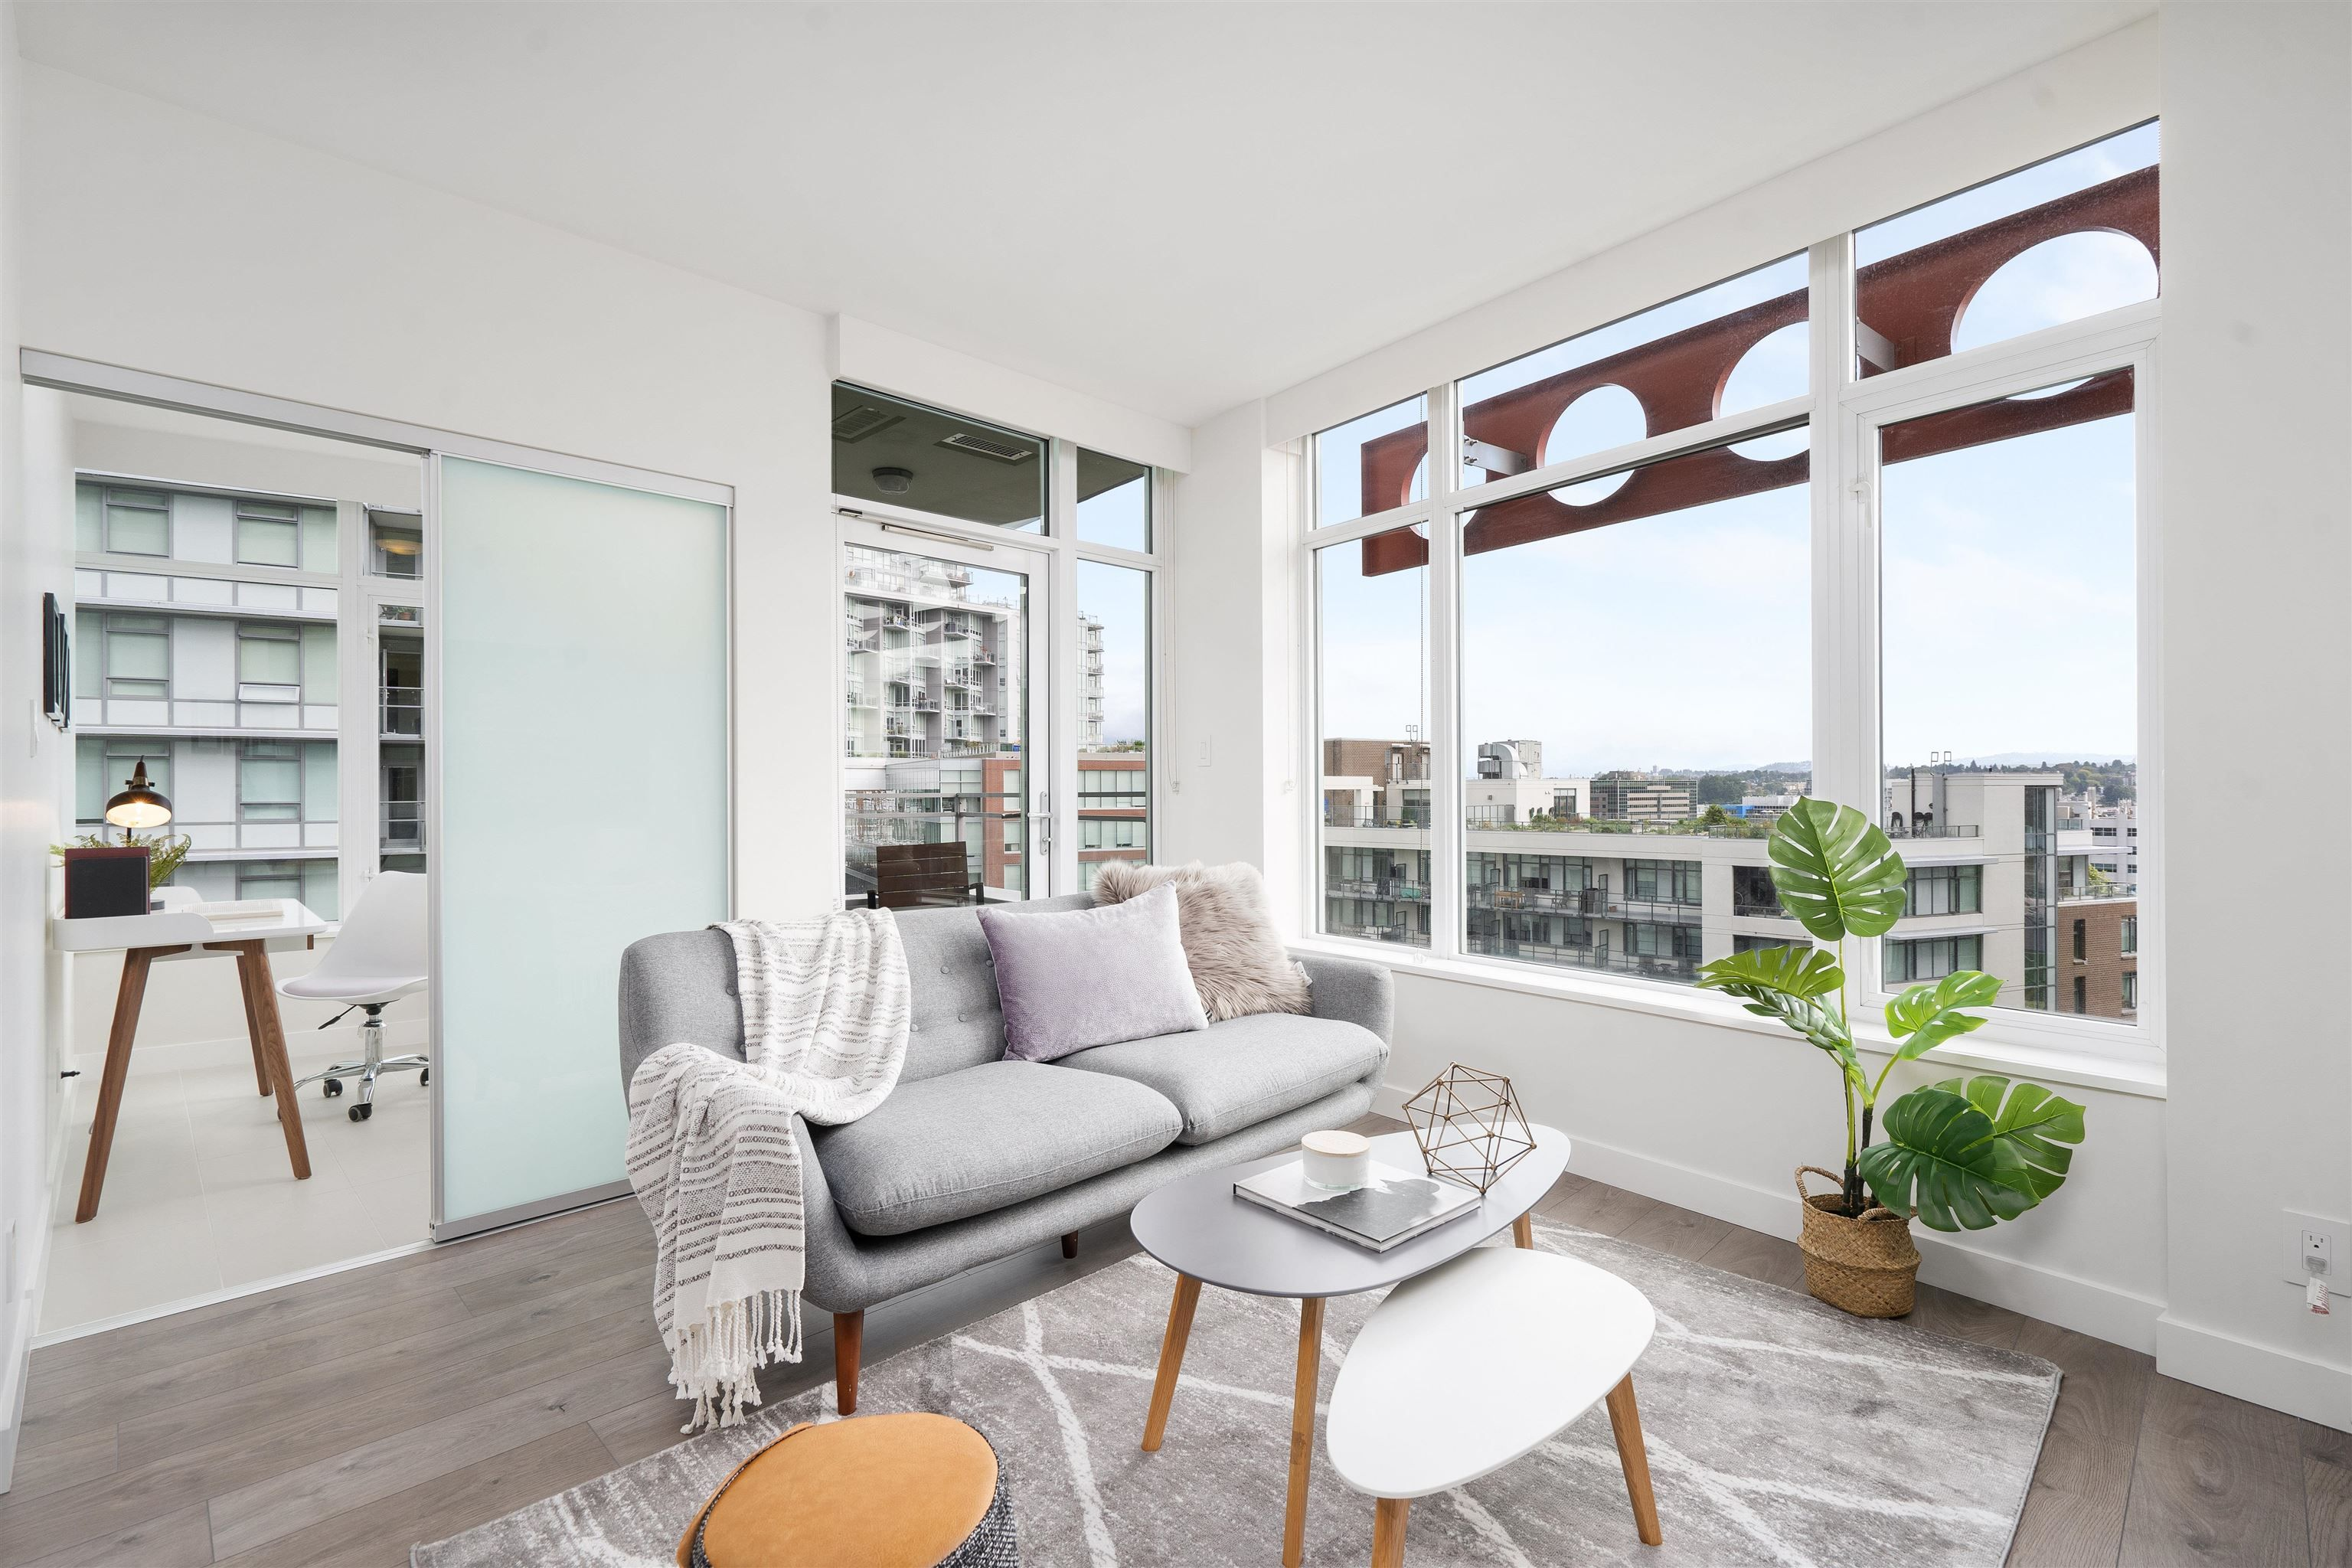 """Main Photo: 1102 111 E 1ST Avenue in Vancouver: Mount Pleasant VE Condo for sale in """"BLOCK 100"""" (Vancouver East)  : MLS®# R2617874"""